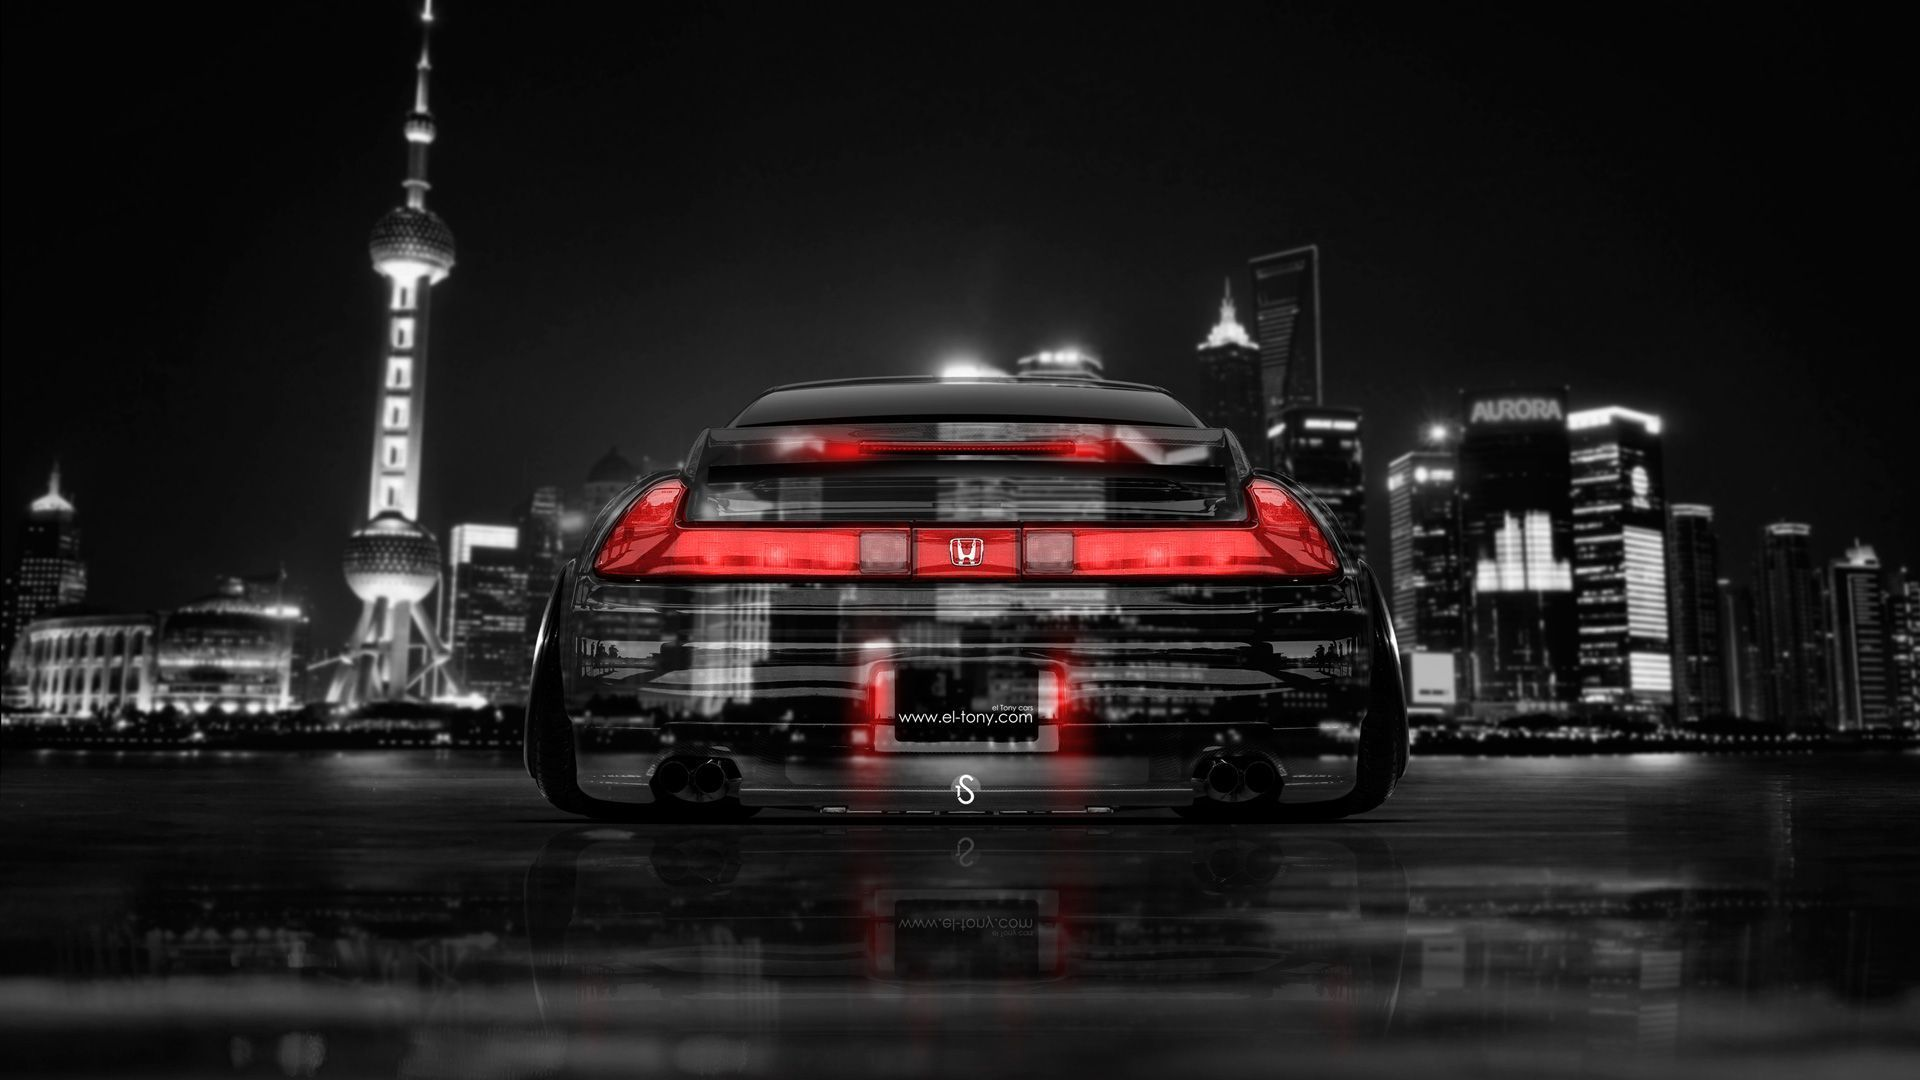 Honda NSX JDM Back Crystal City Car 2014 « El Tony